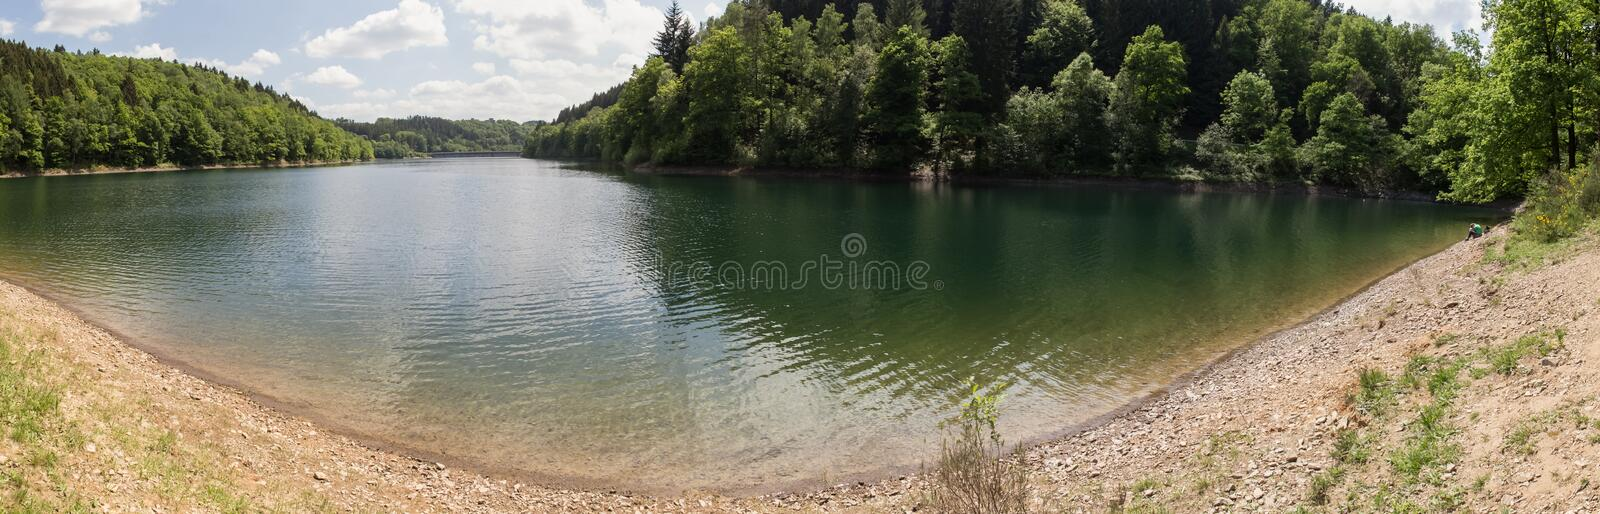 aggertalsperre lake germany high definition panorama stock photography